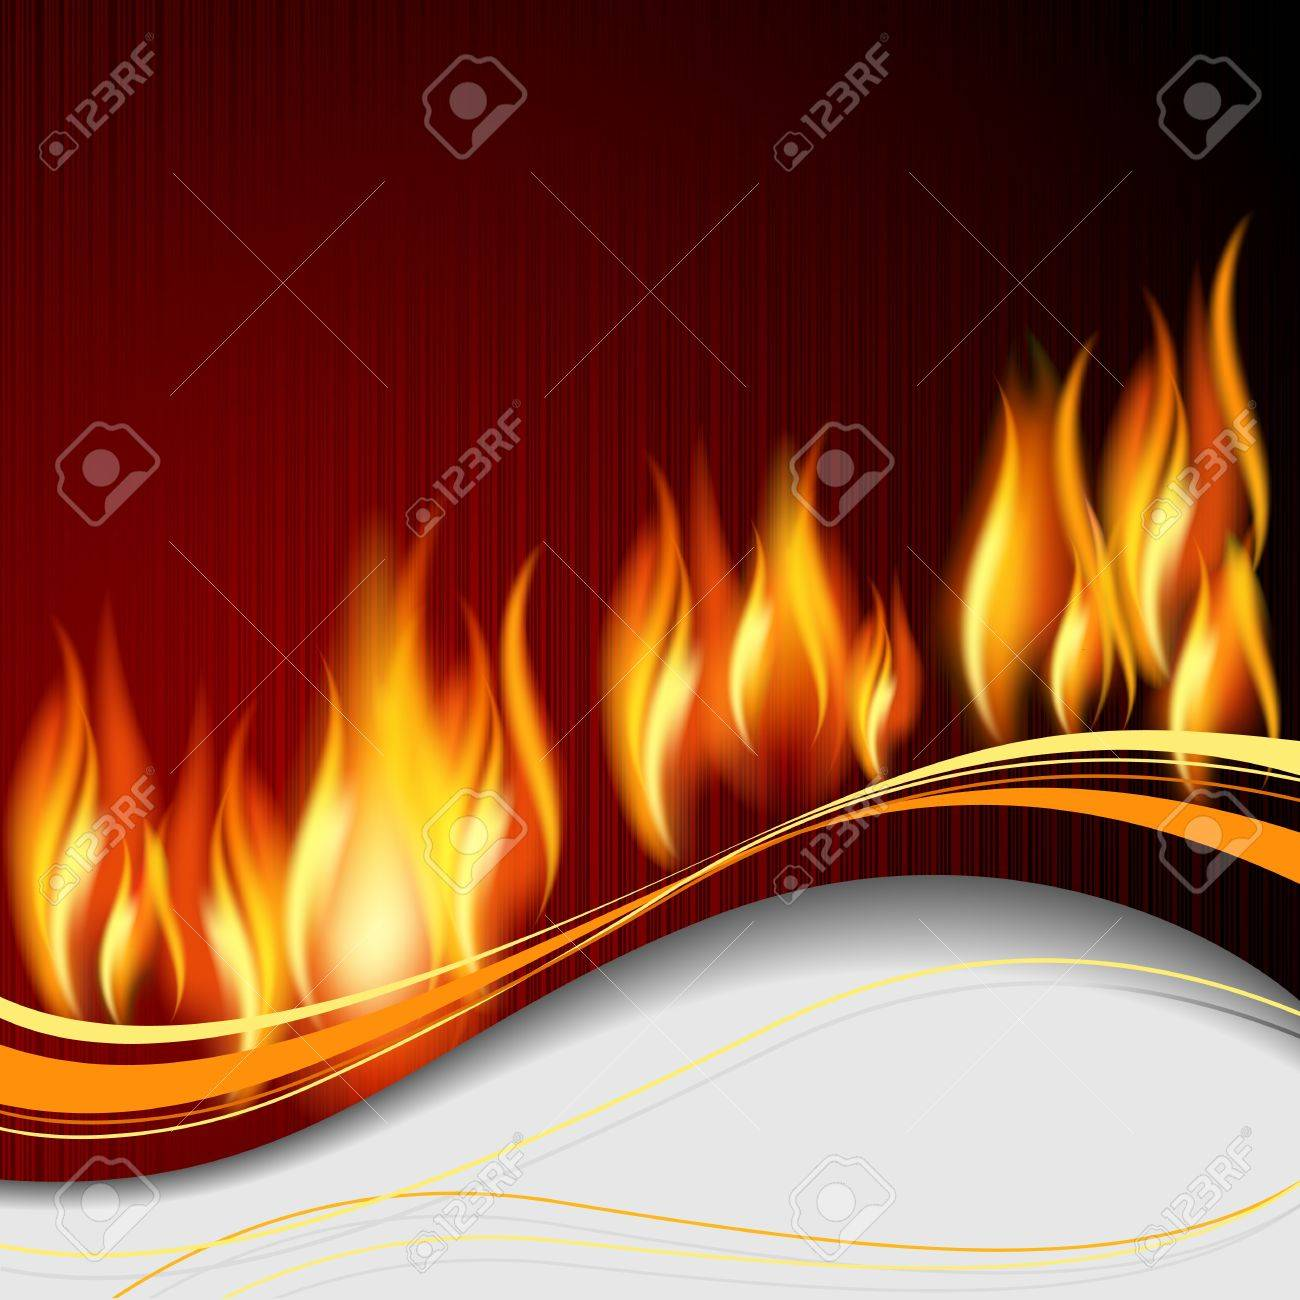 Background with flame and white wave. - 11218743